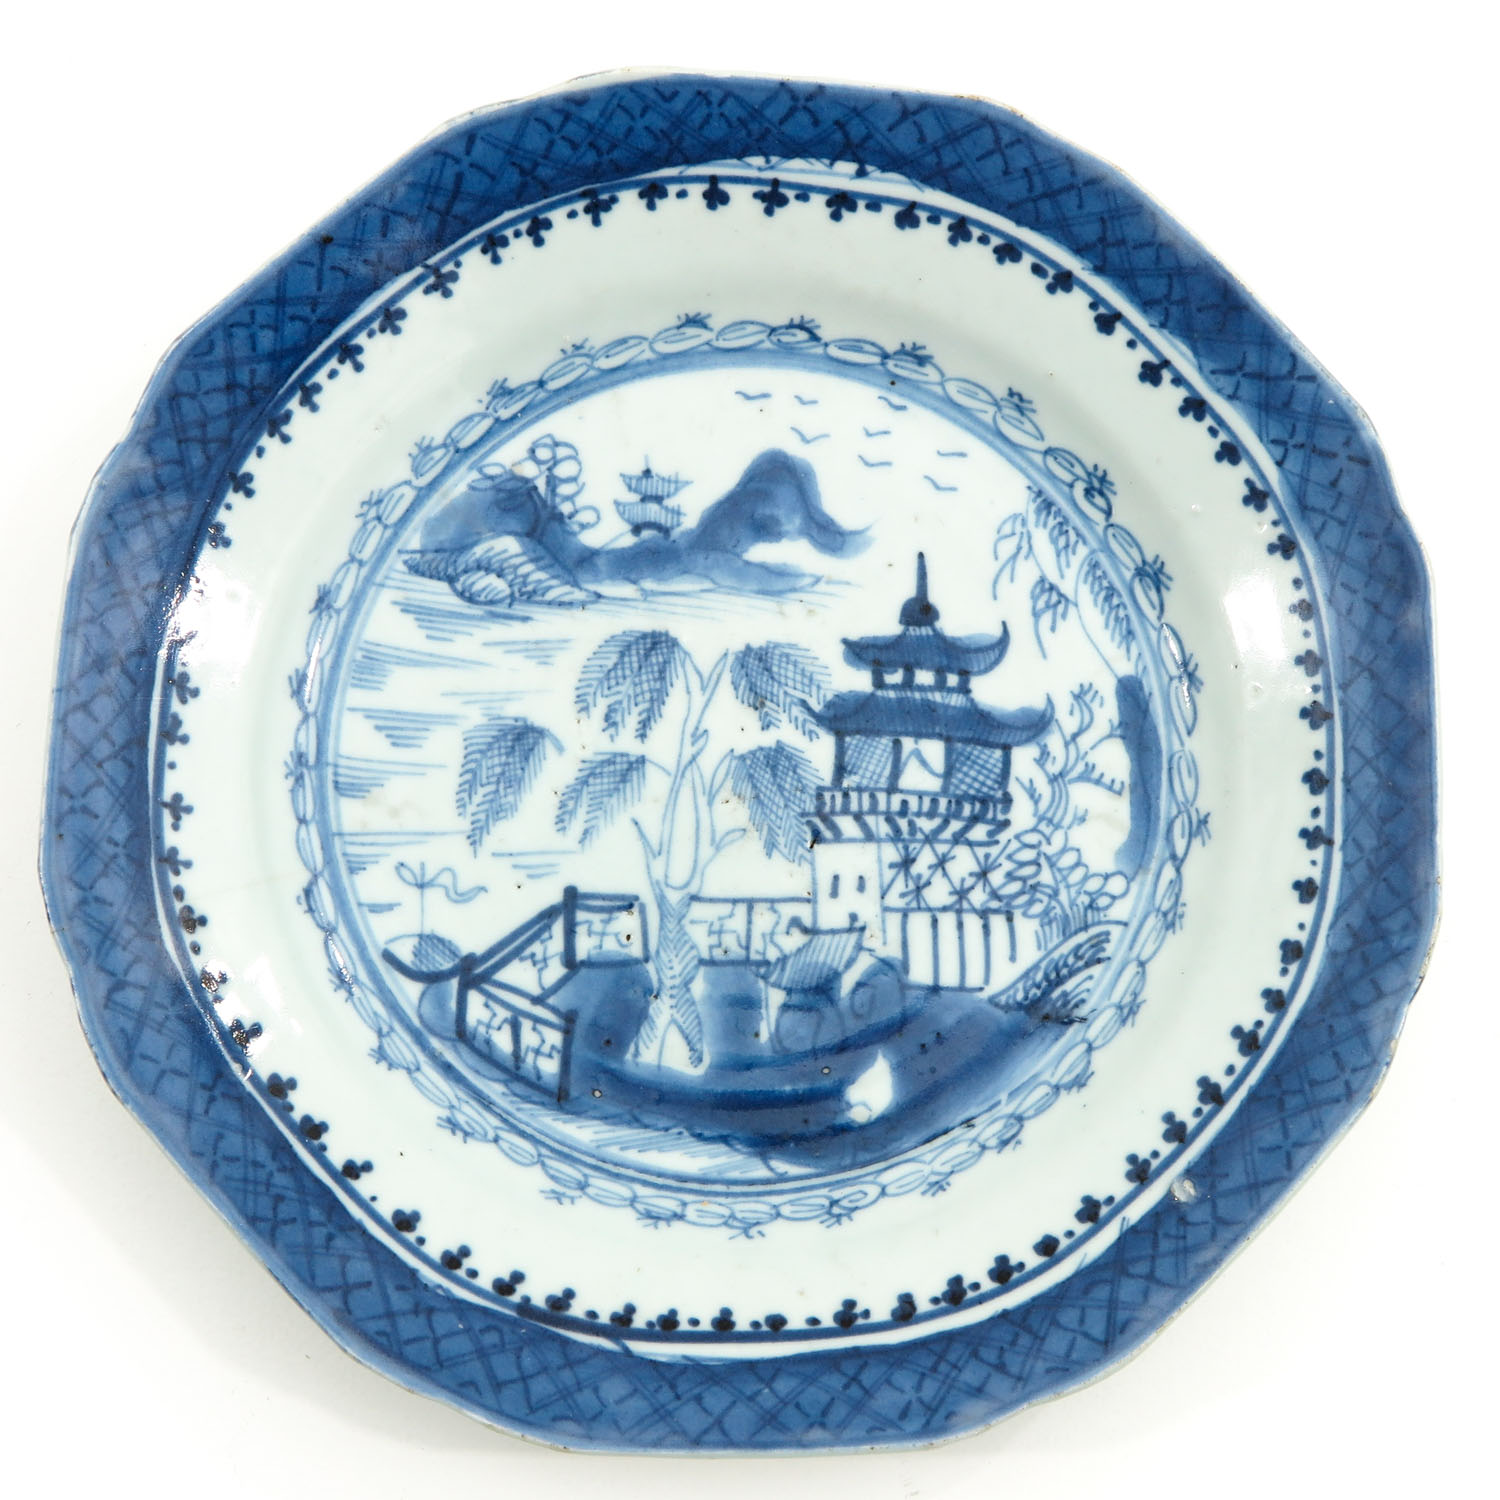 A Pair of Blue and White Plates - Image 3 of 9